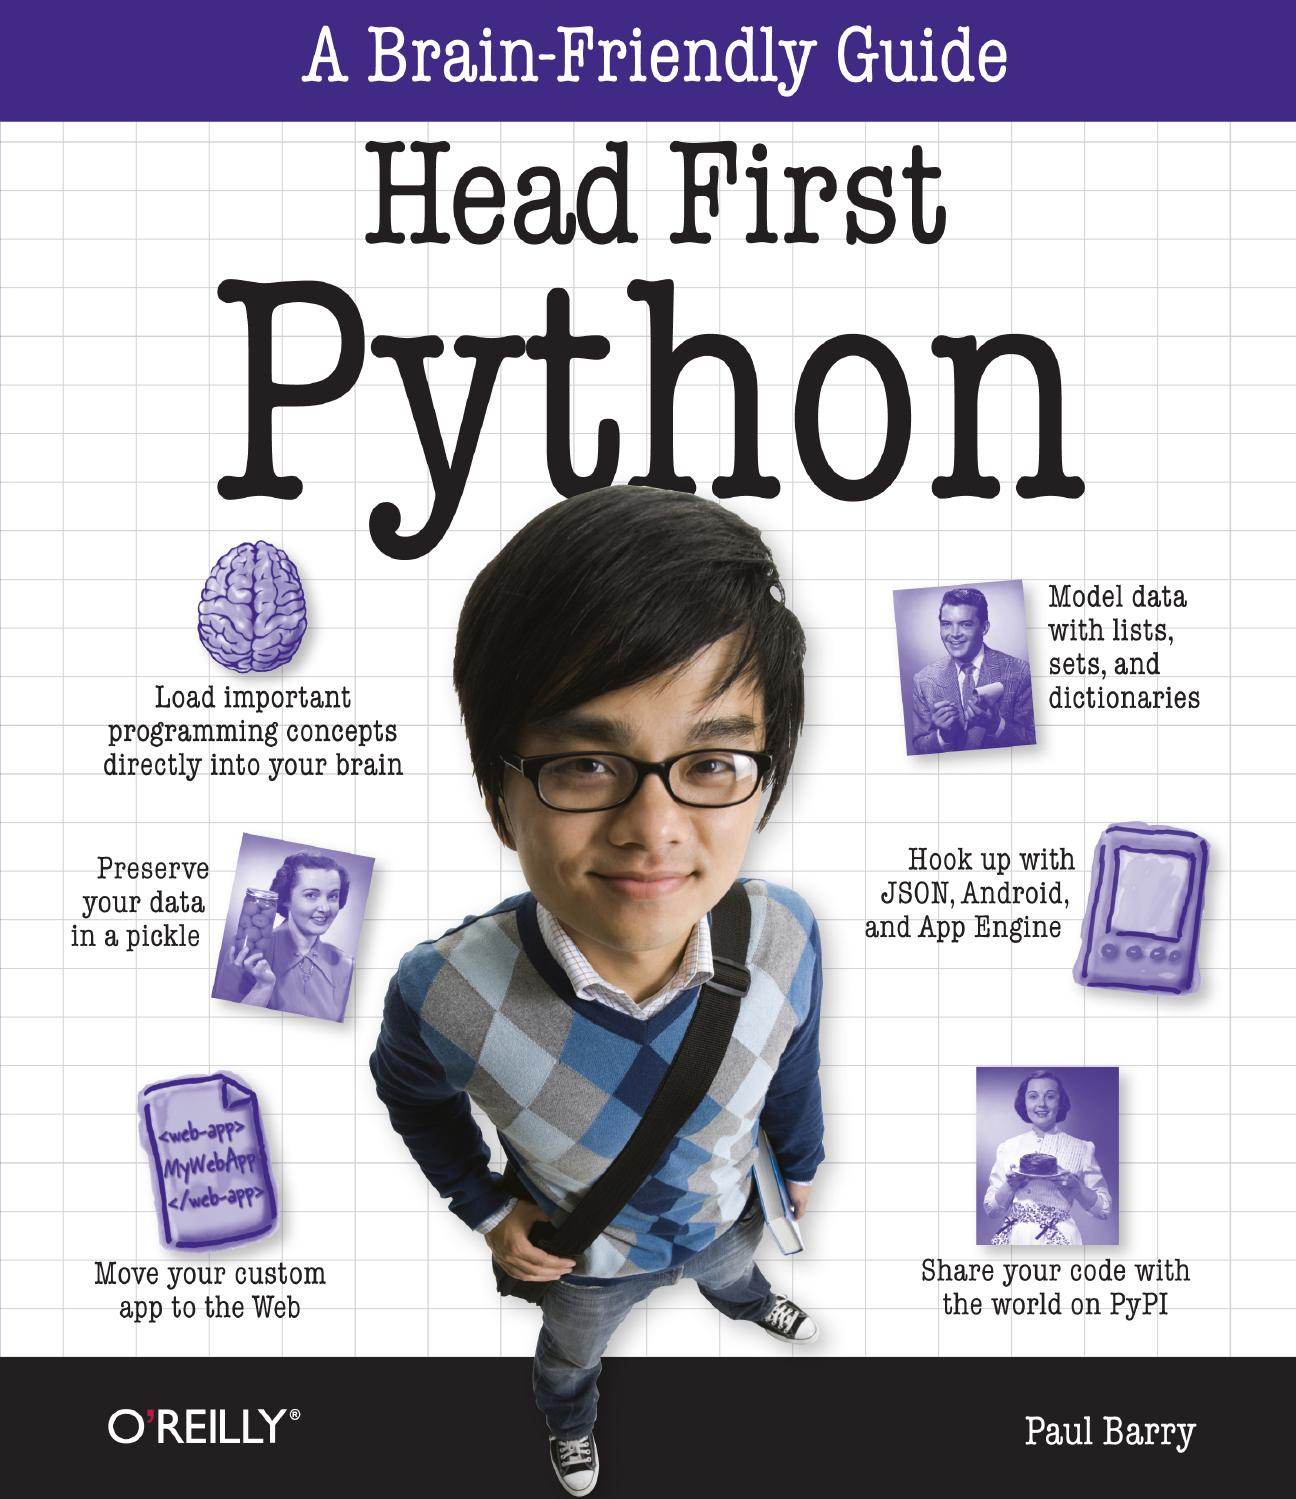 head first python - 768×888